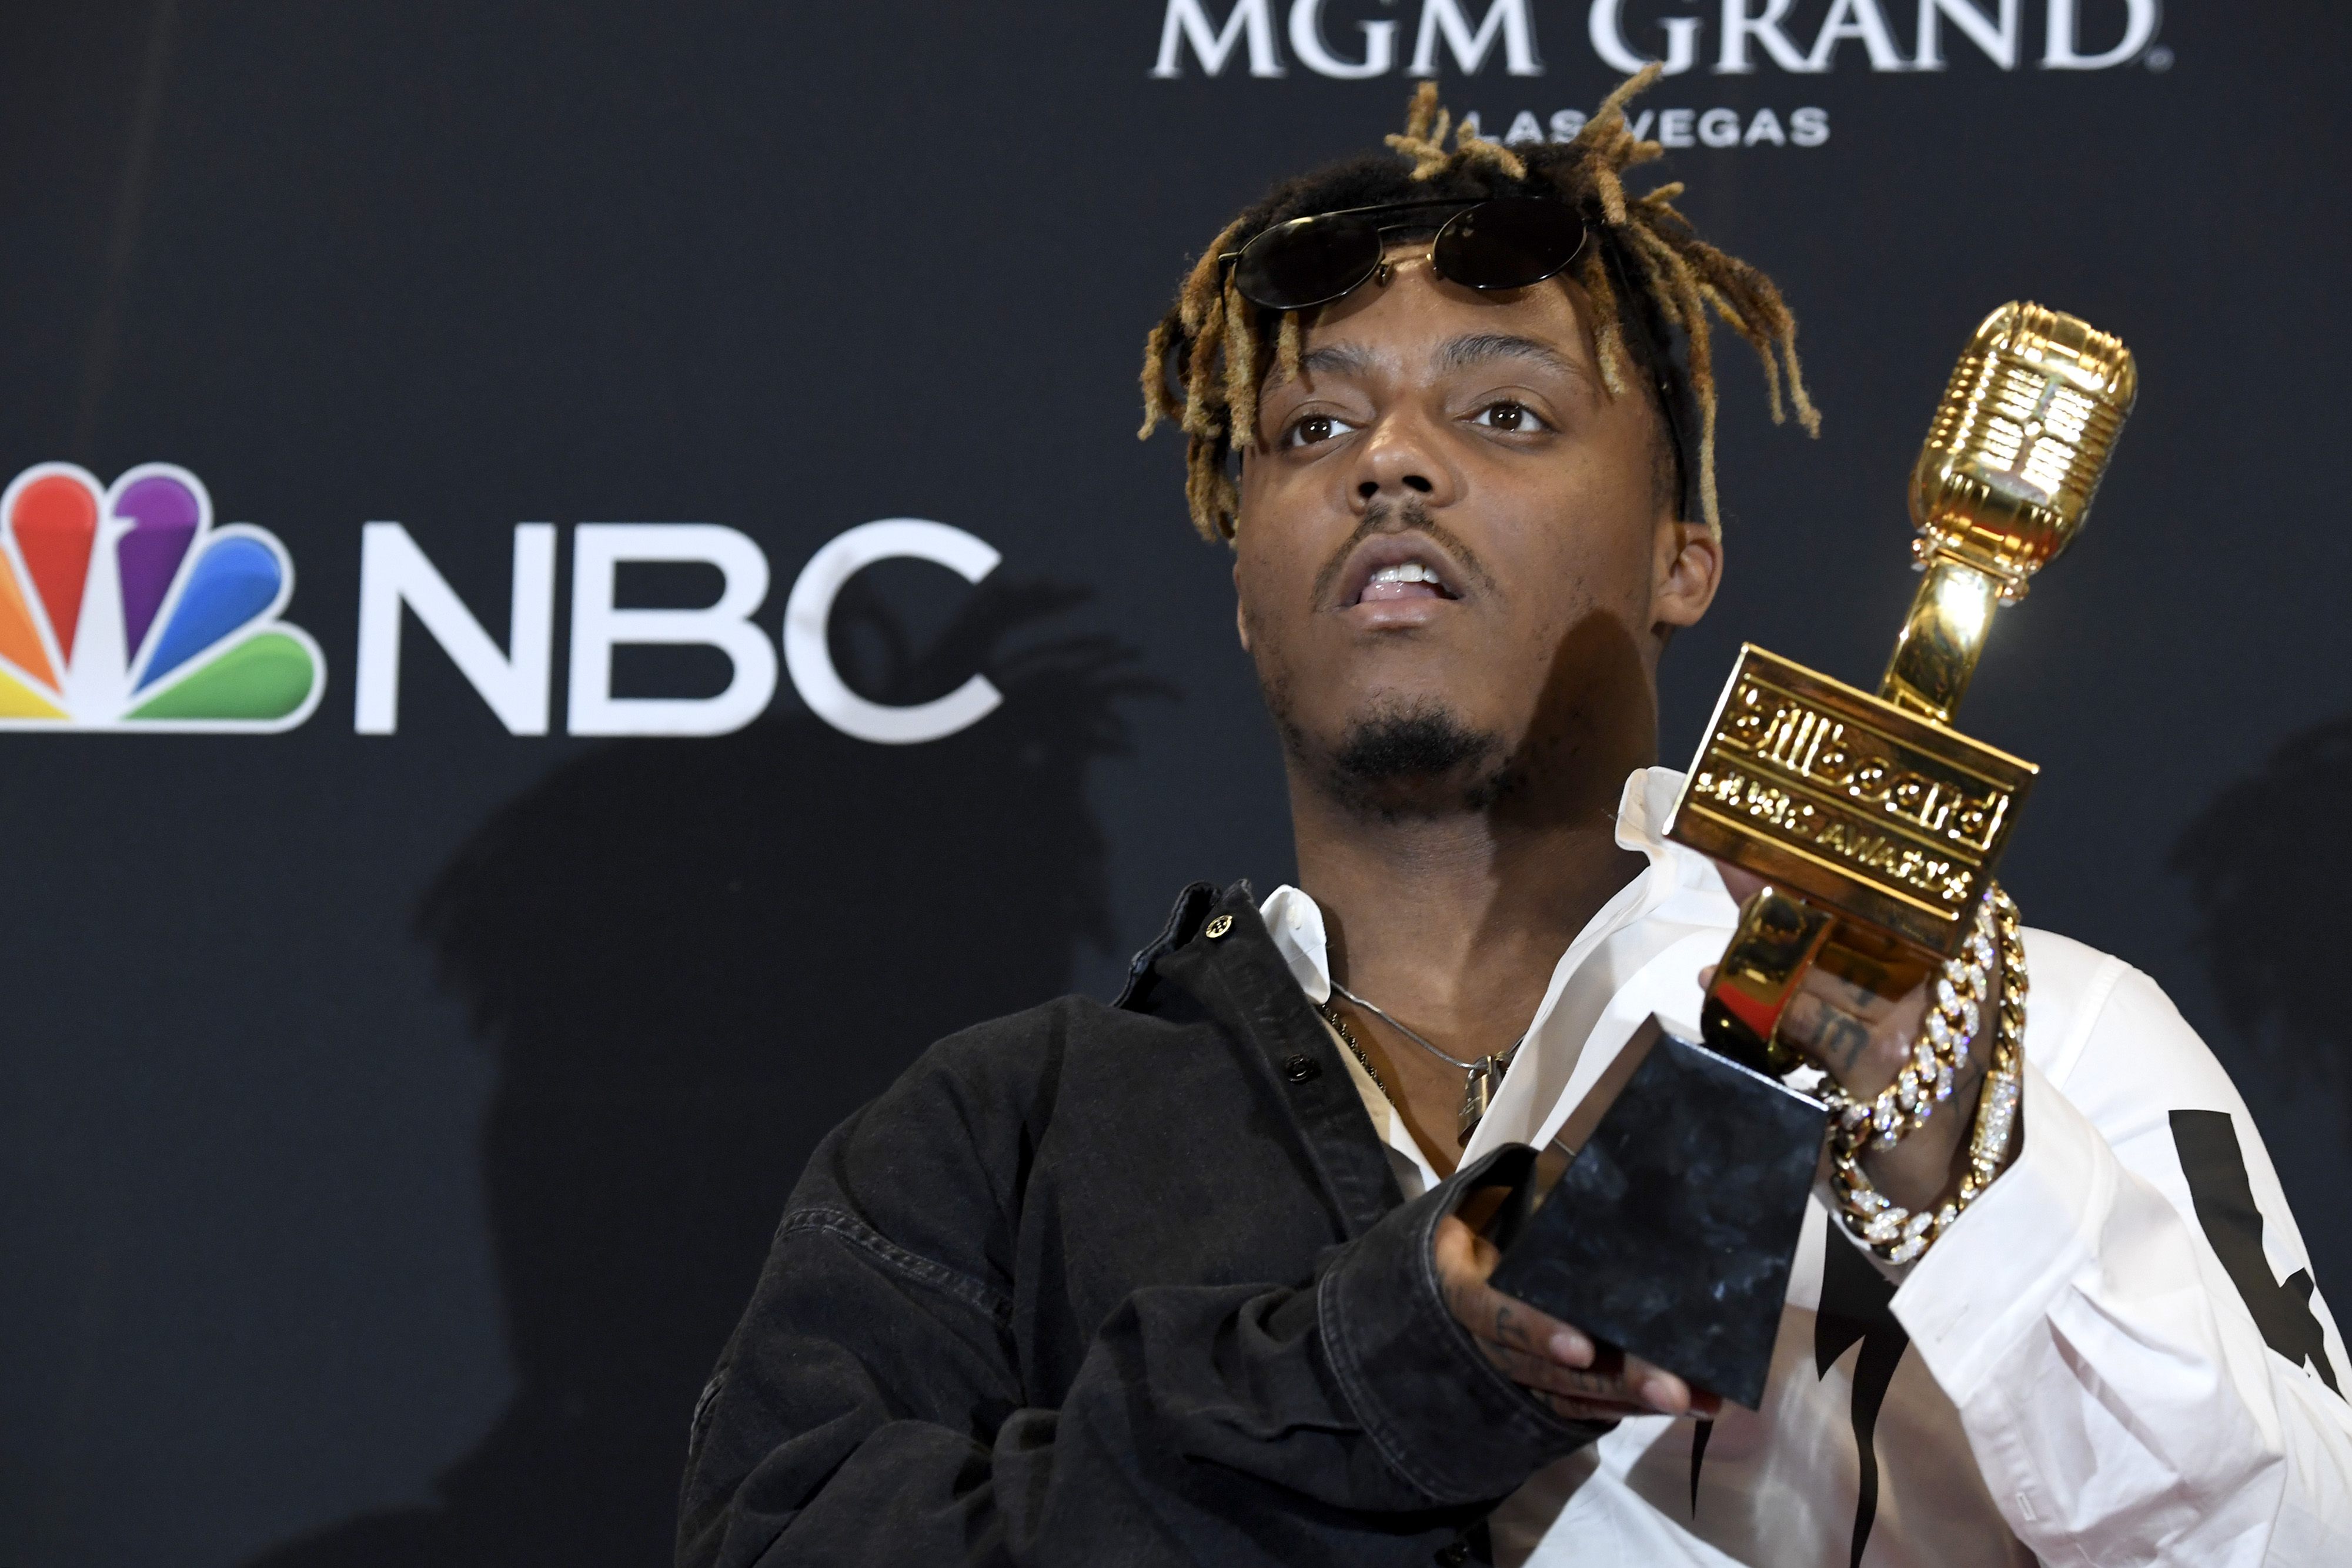 Juice Wrld's mother spoke out for the first time since his unfortunate passing, she spoke on addiction and expressed she helps his story helps others.